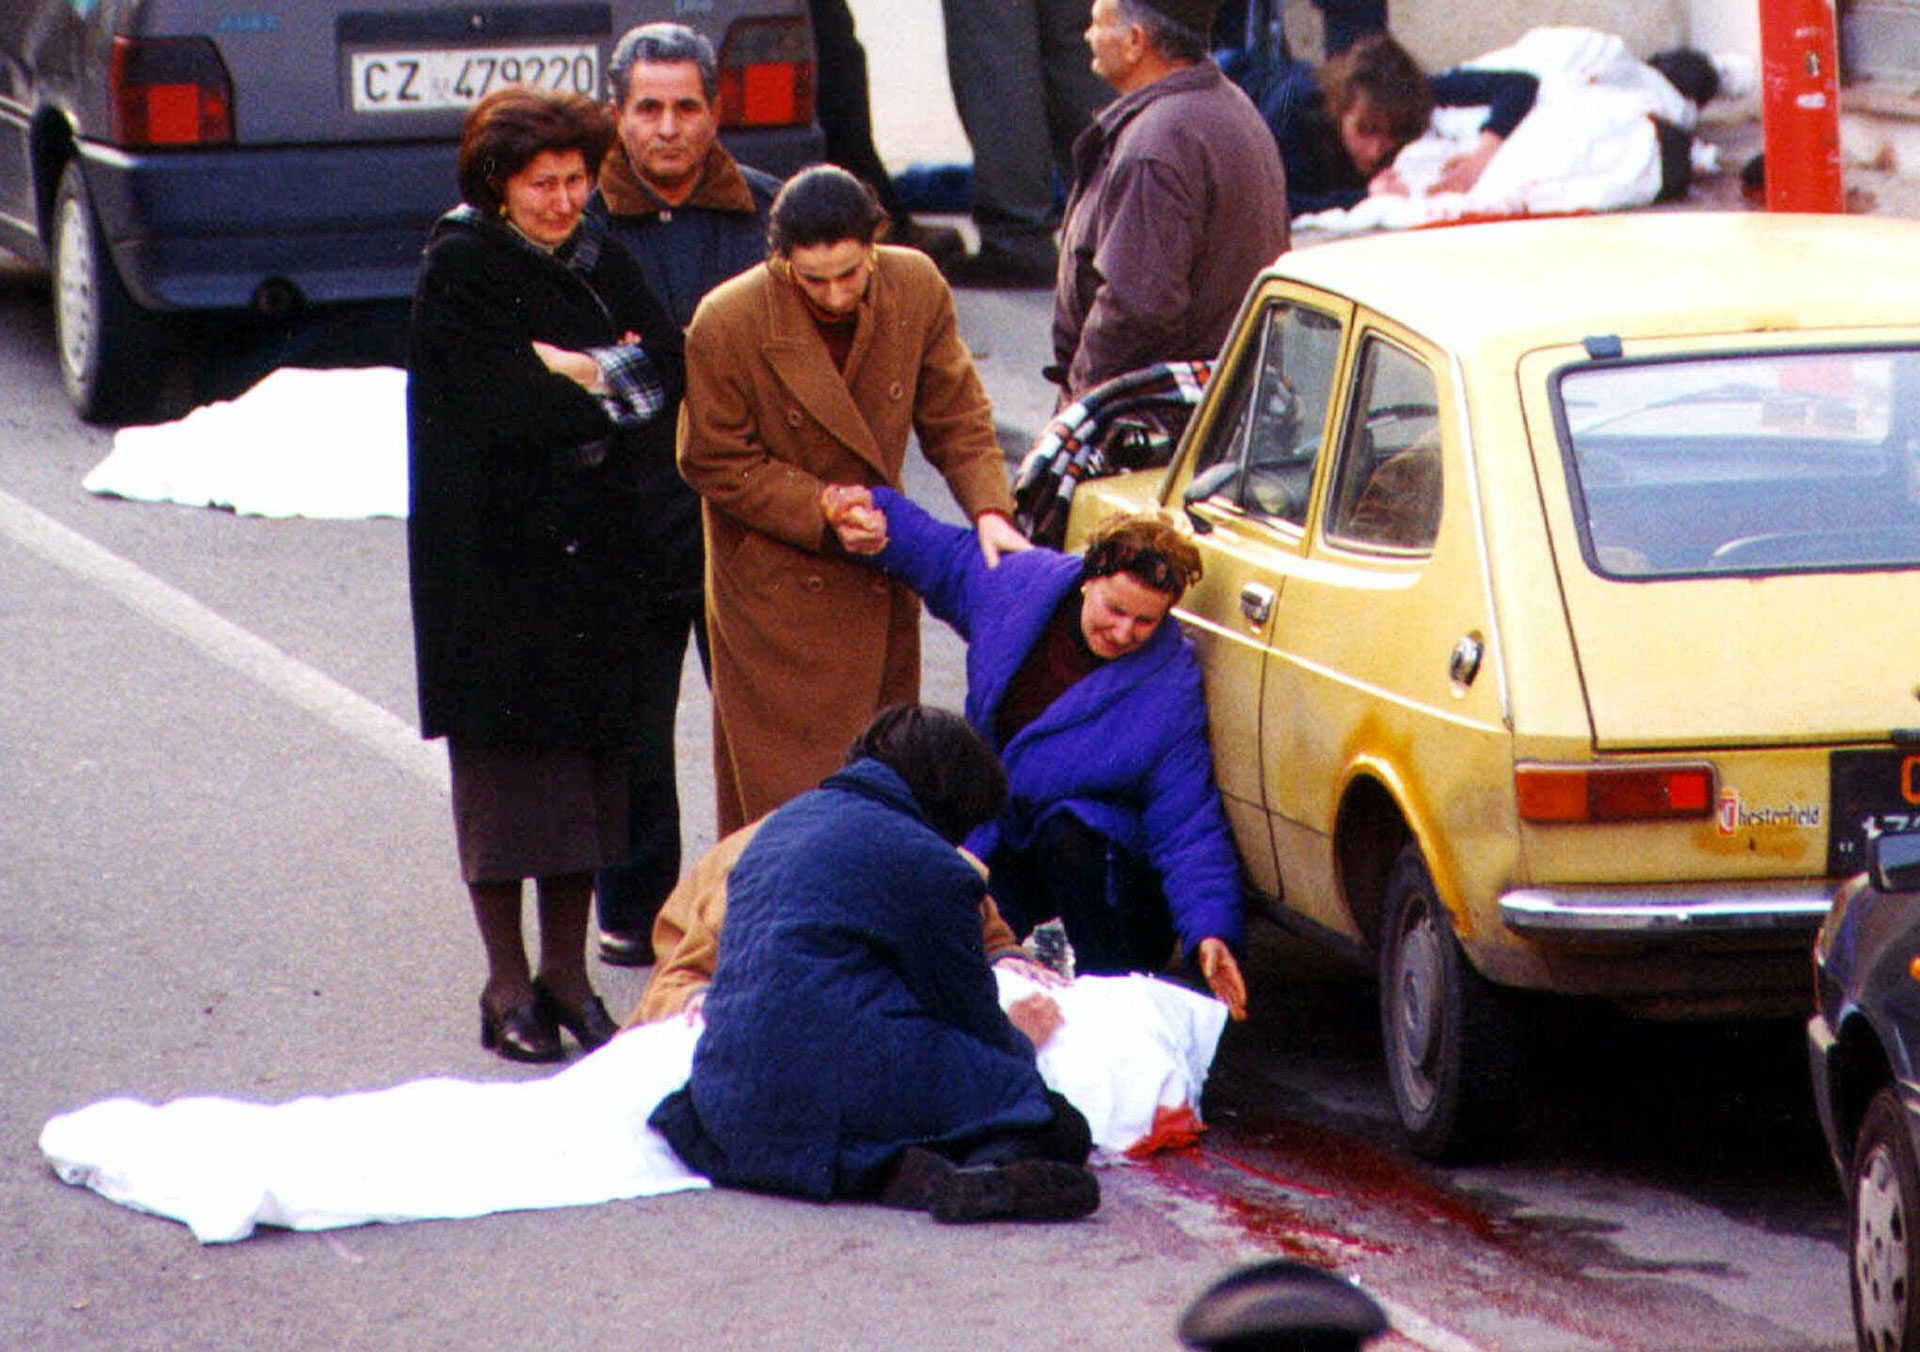 Relatives of the alleged 'Ndrangheta (Calabrian mafia) boss Salvatore Valente, 39, cry after Valente, together with two other suspected mobsters and a man caught in the crossfire, were killed in a shootout Saturday, Feb. 26, 2000 in Strongoli, Cotrone, Italy in this southern Italian town's main street